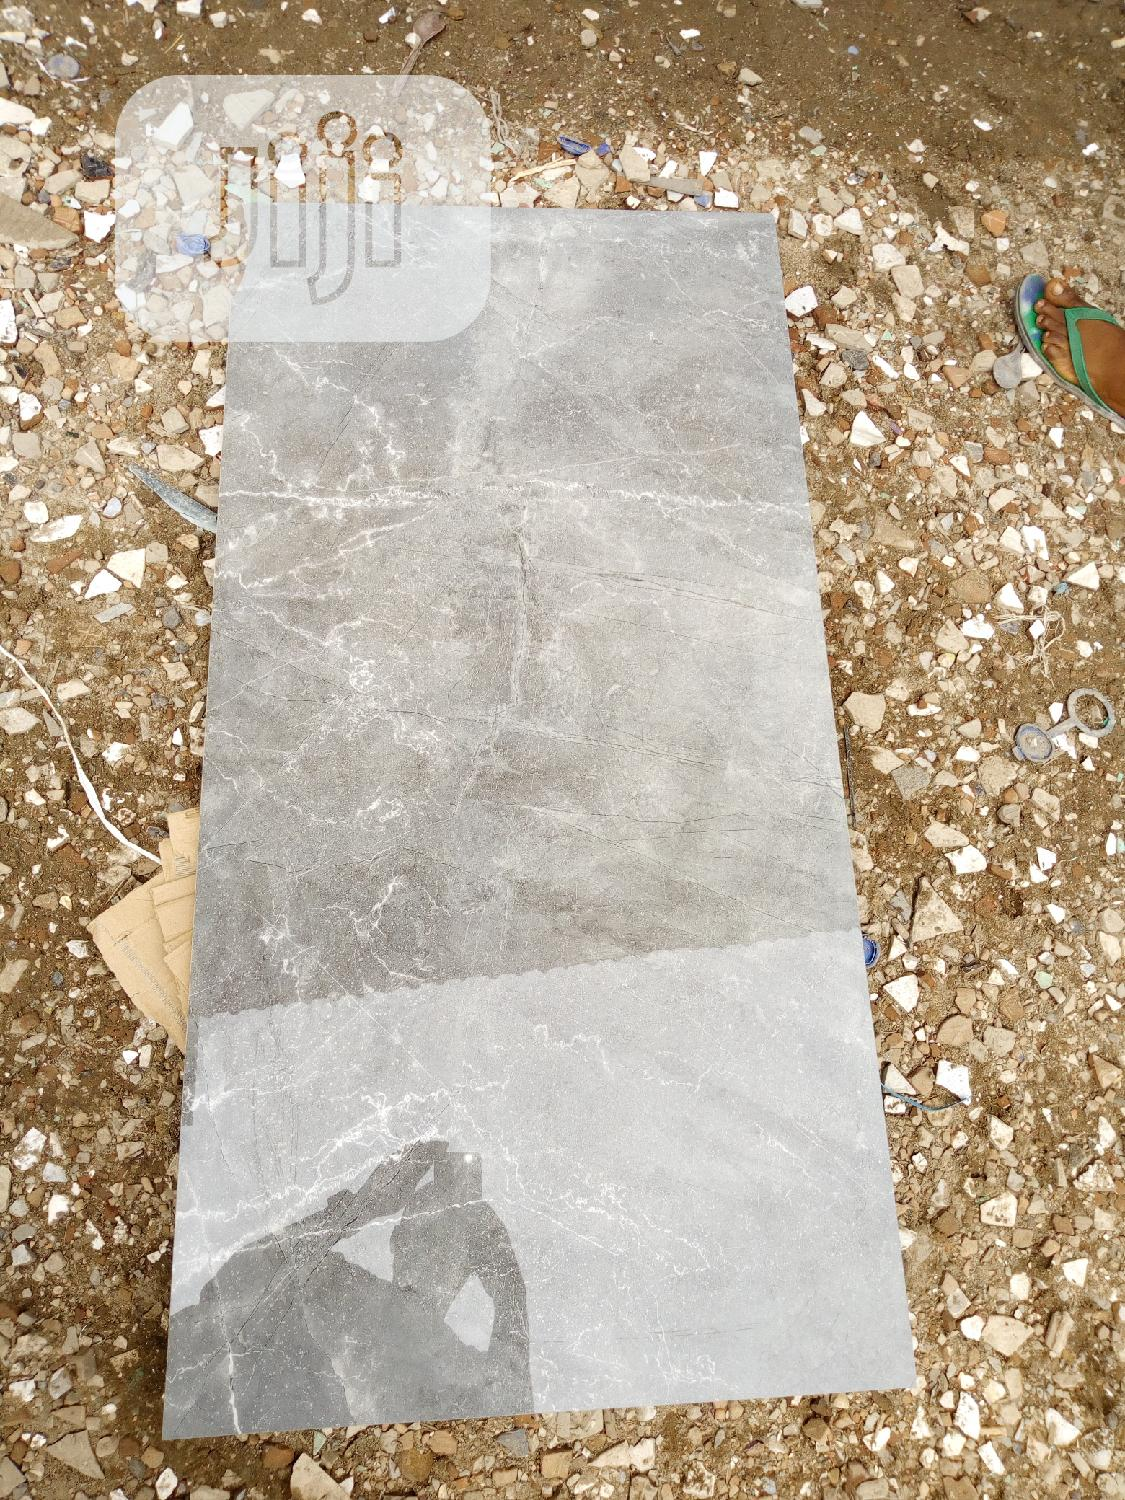 60/120 Spain Super Quality And High Polished Floor Tiles | Building Materials for sale in Orile, Lagos State, Nigeria